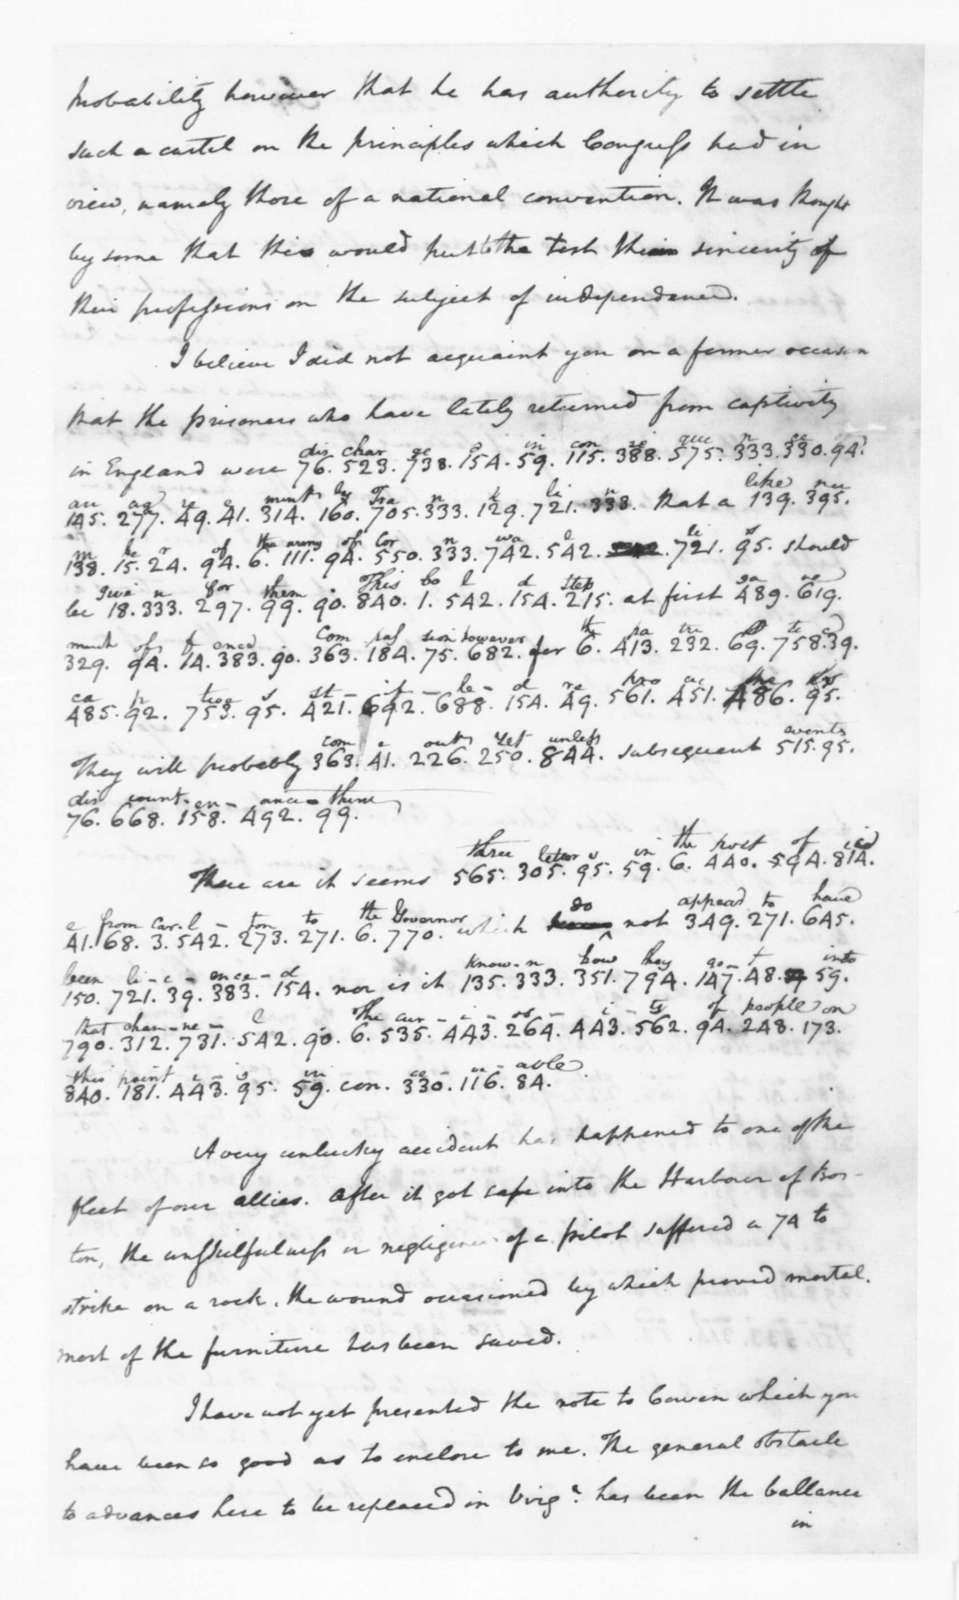 James Madison to Edmund Randolph, August,1782. Partly in Cypher.